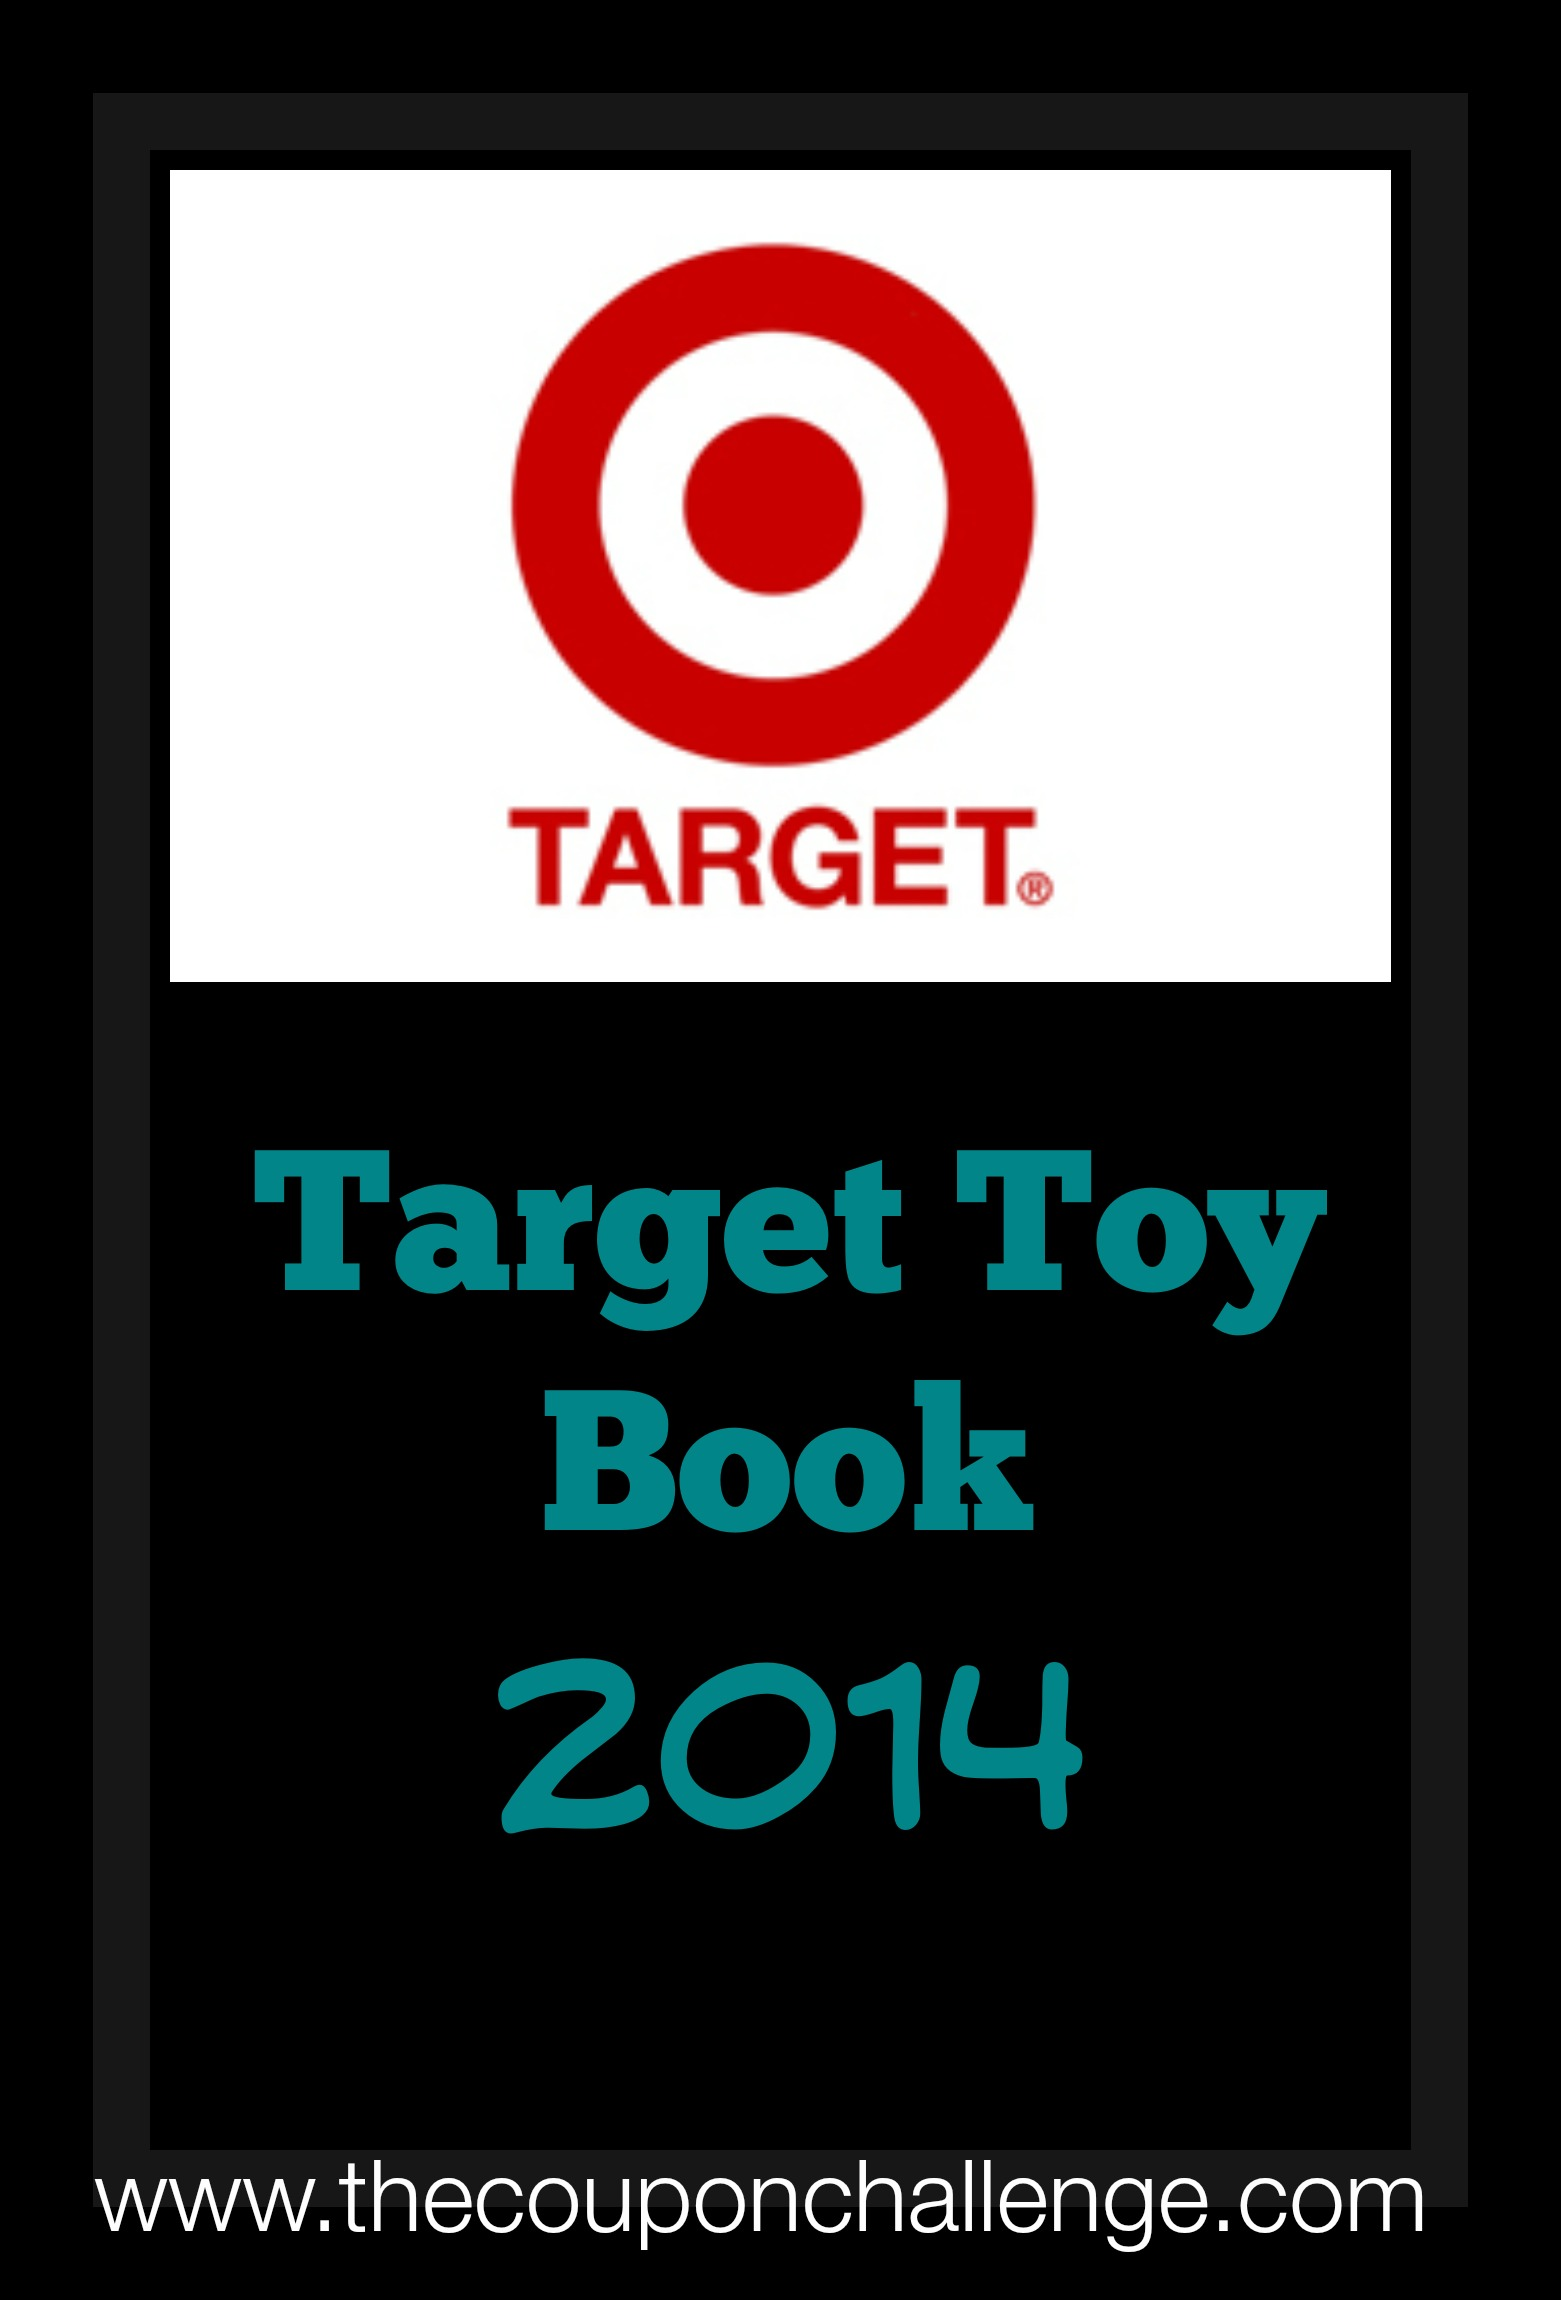 target Toy Book 2014